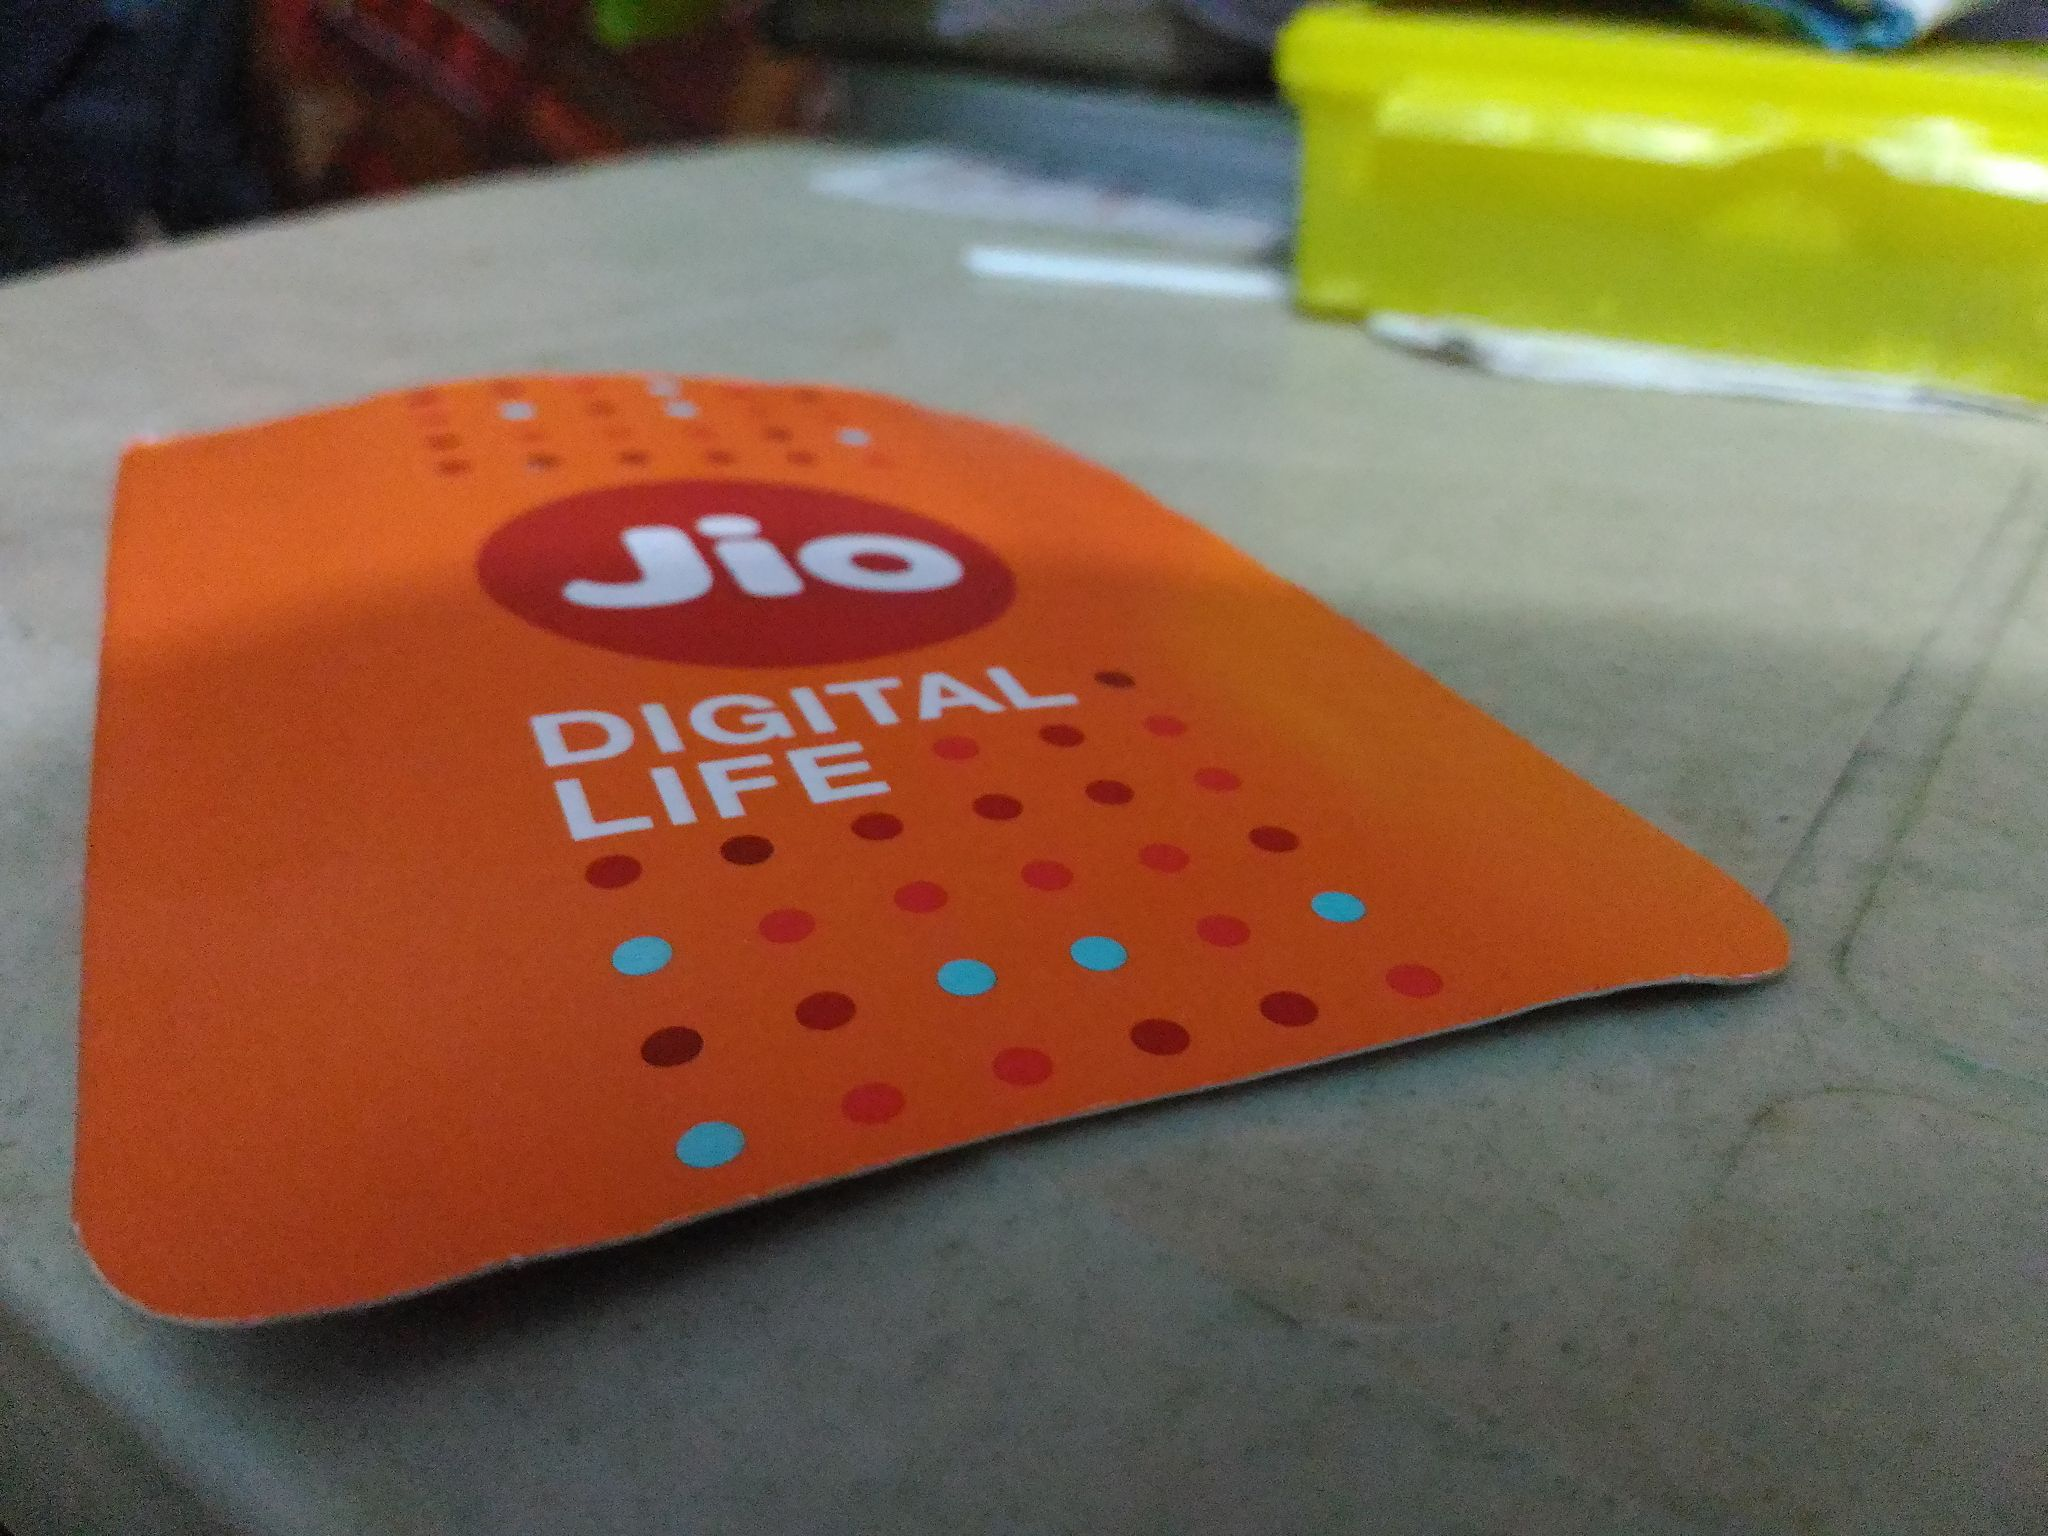 jiofi recharge plans